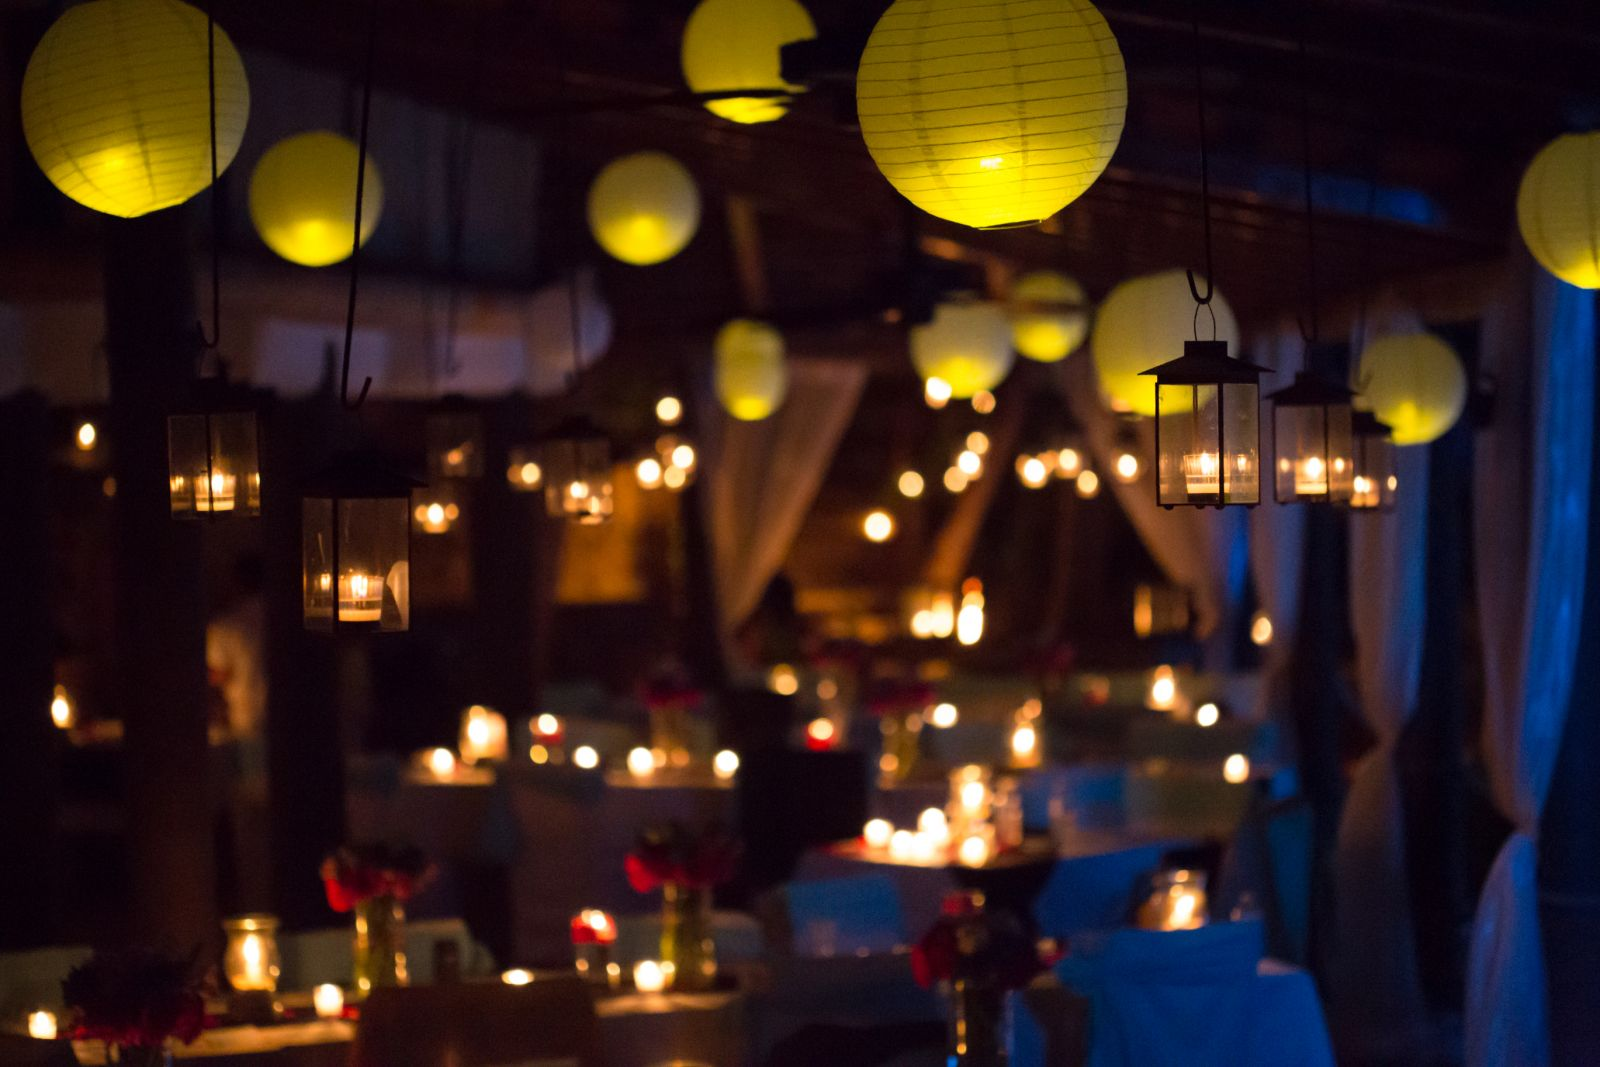 Chinese lanterns in warm color + beautiful candles around the wedding área